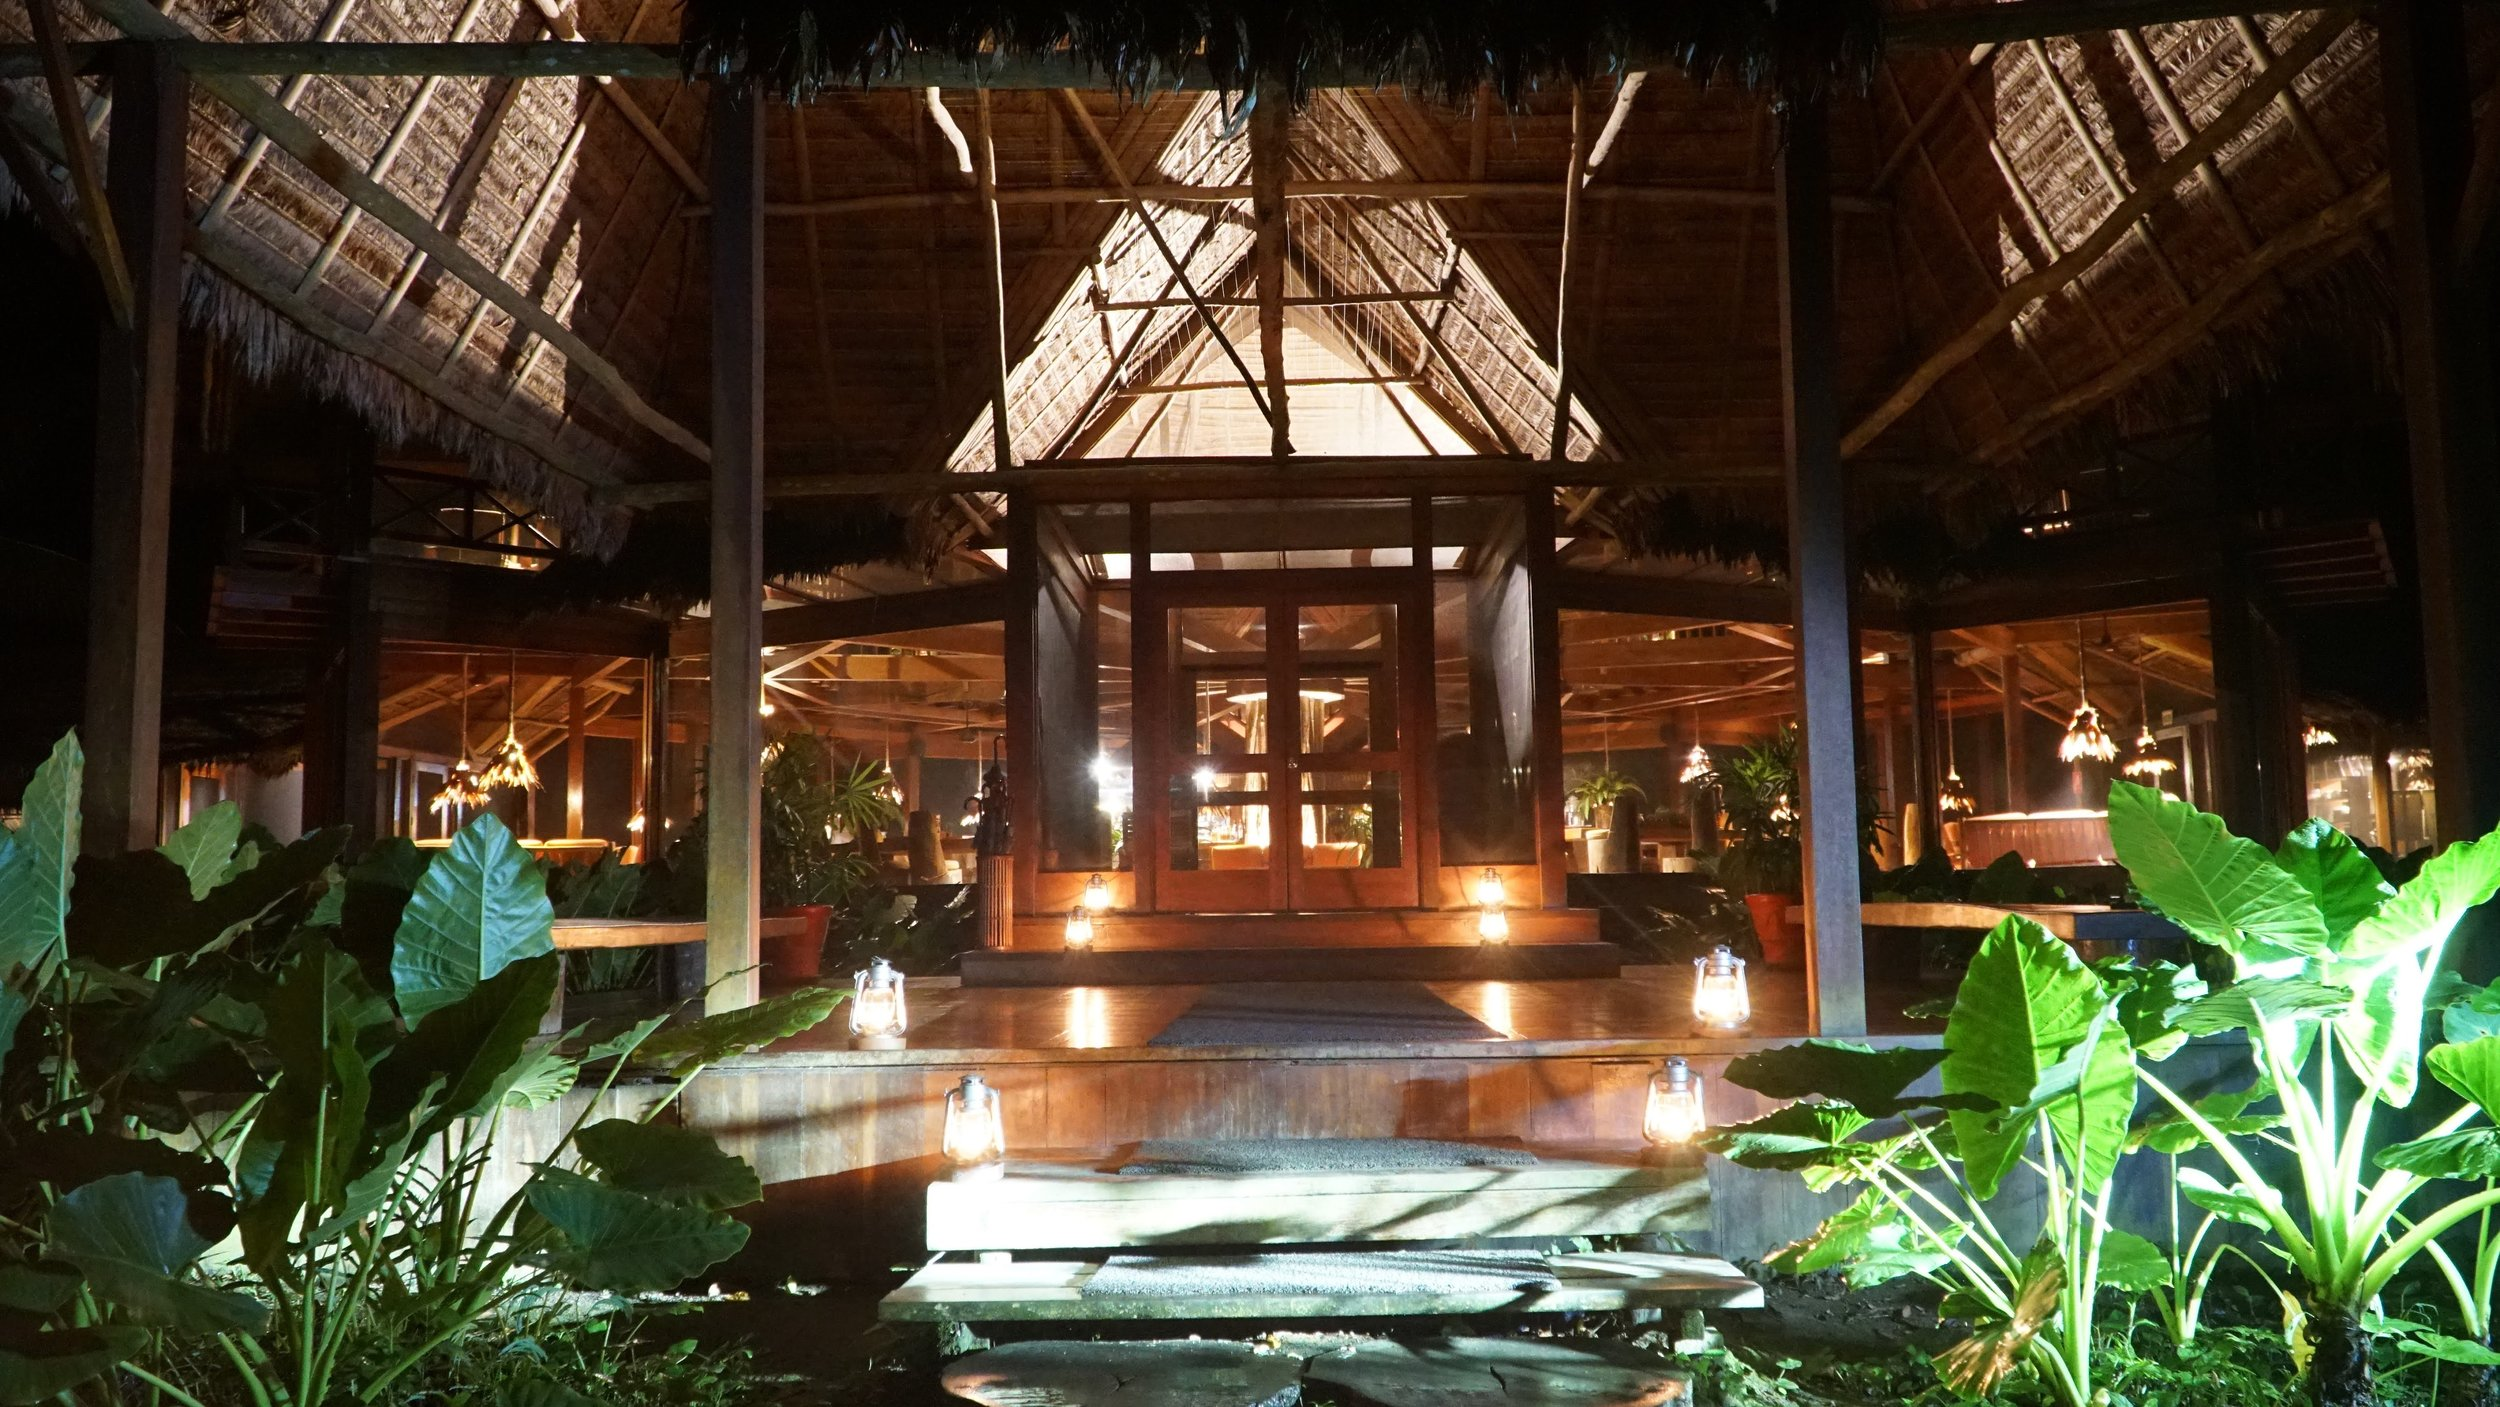 The beautiful main lodge at Inkaterra Reserva Amazonica